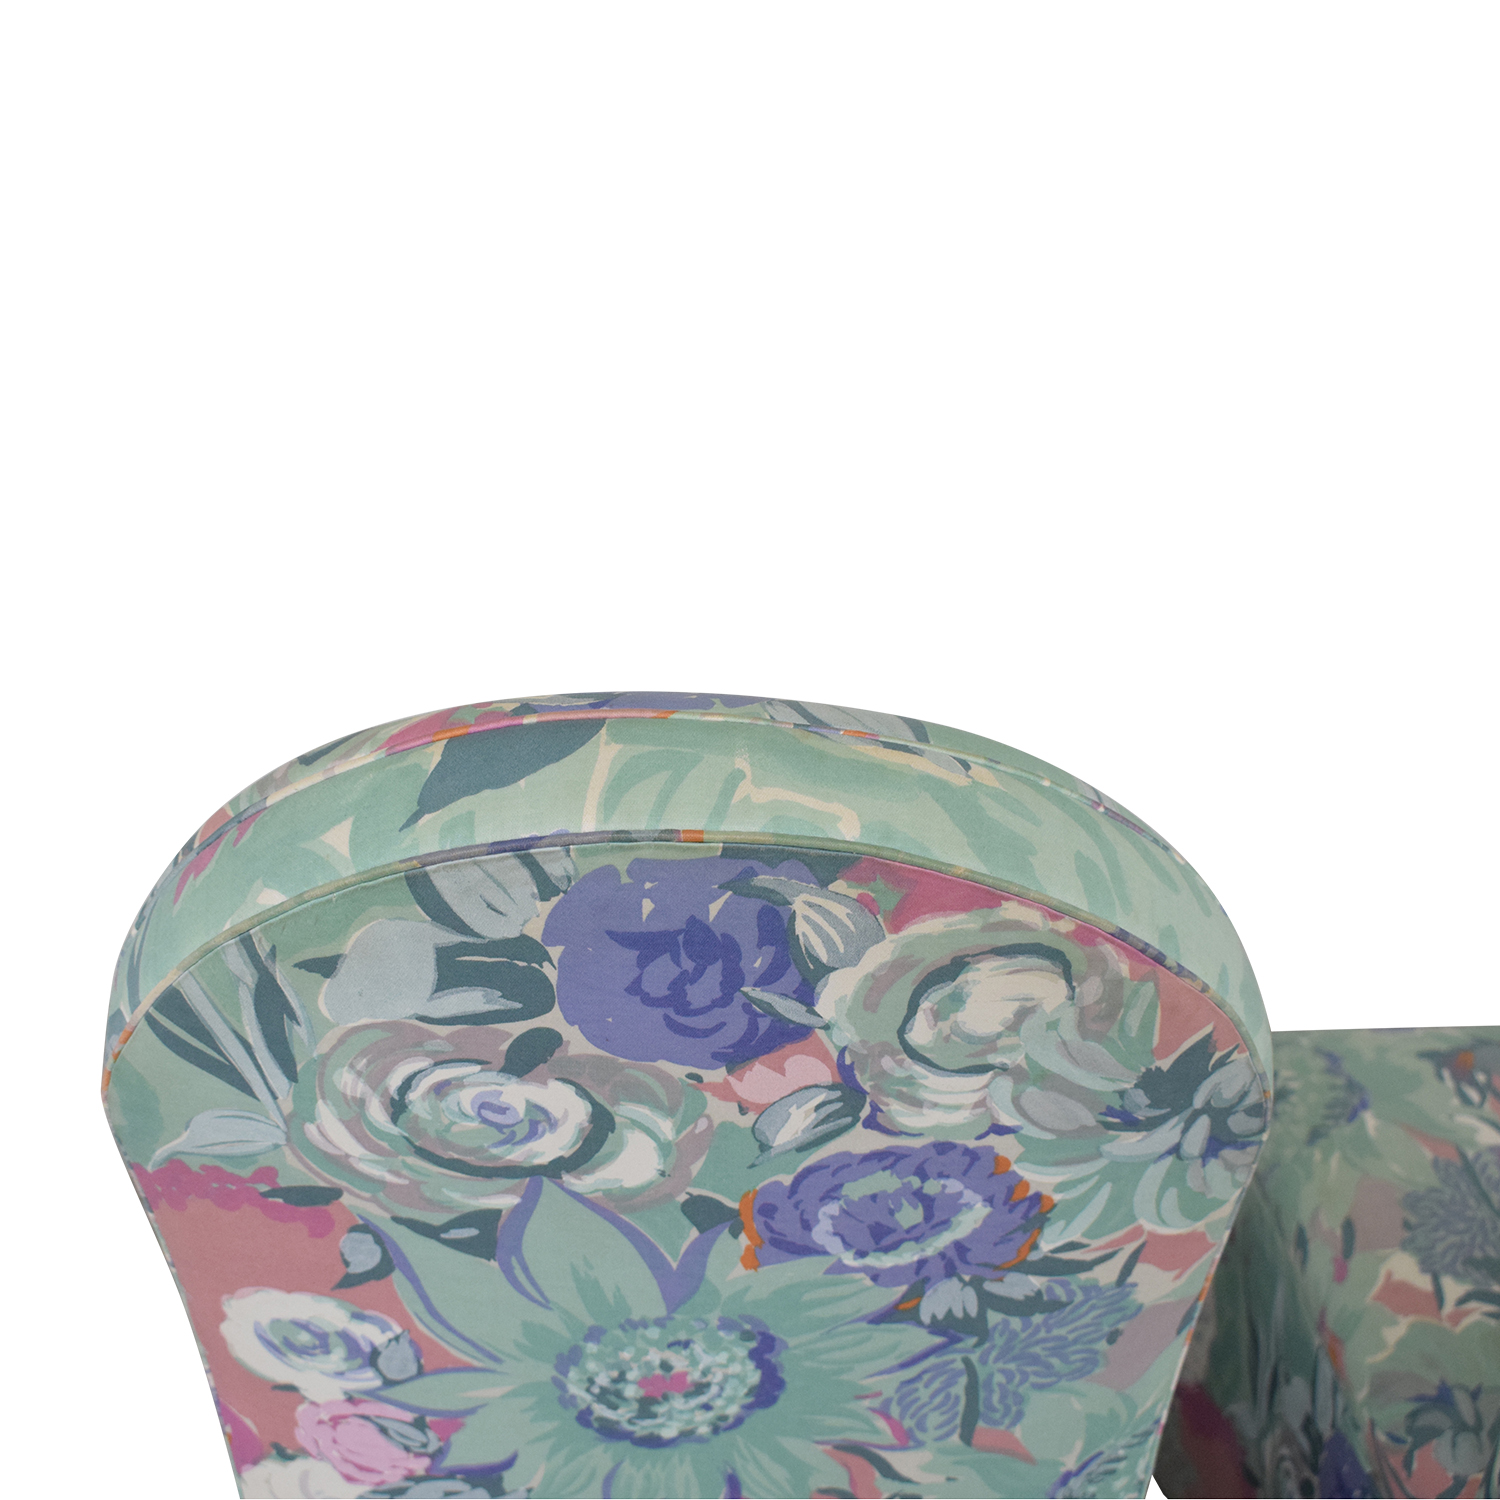 Preview Furniture Preview Furniture David L. James Armless Dining Chairs for sale